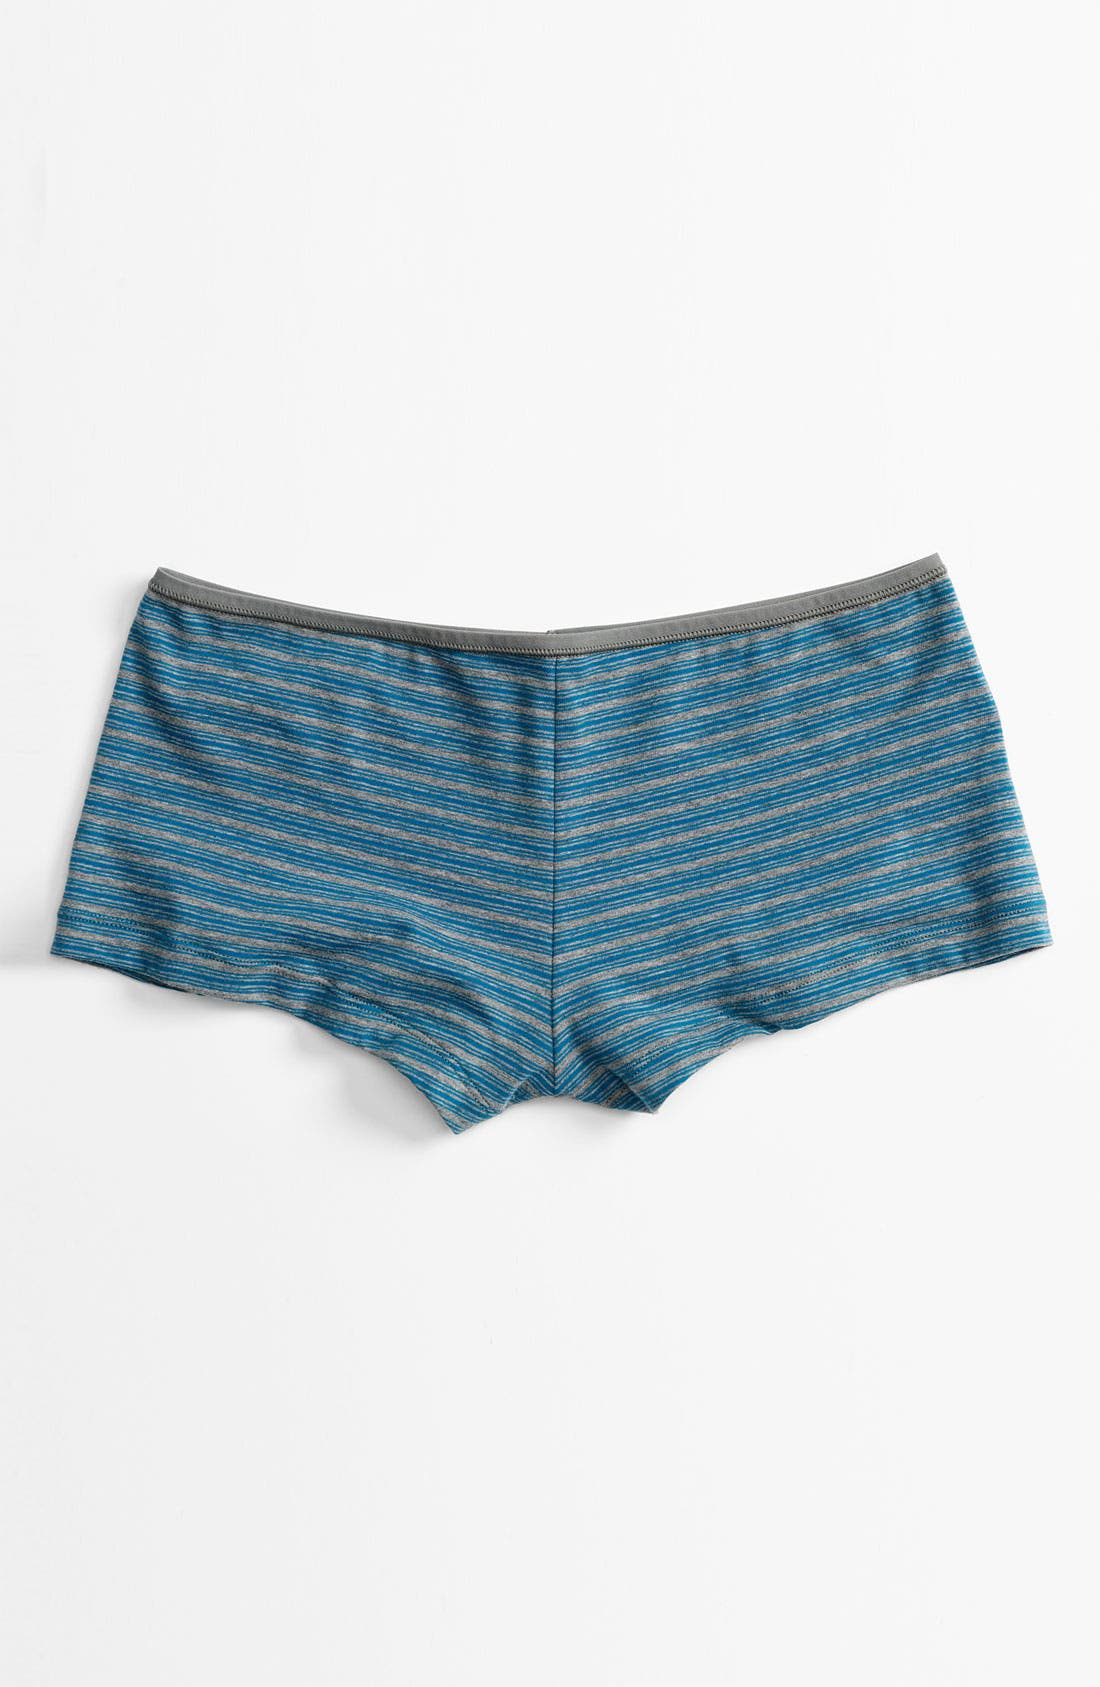 Alternate Image 1 Selected - Shimera Stretch Cotton Boyshorts (4 for $34)